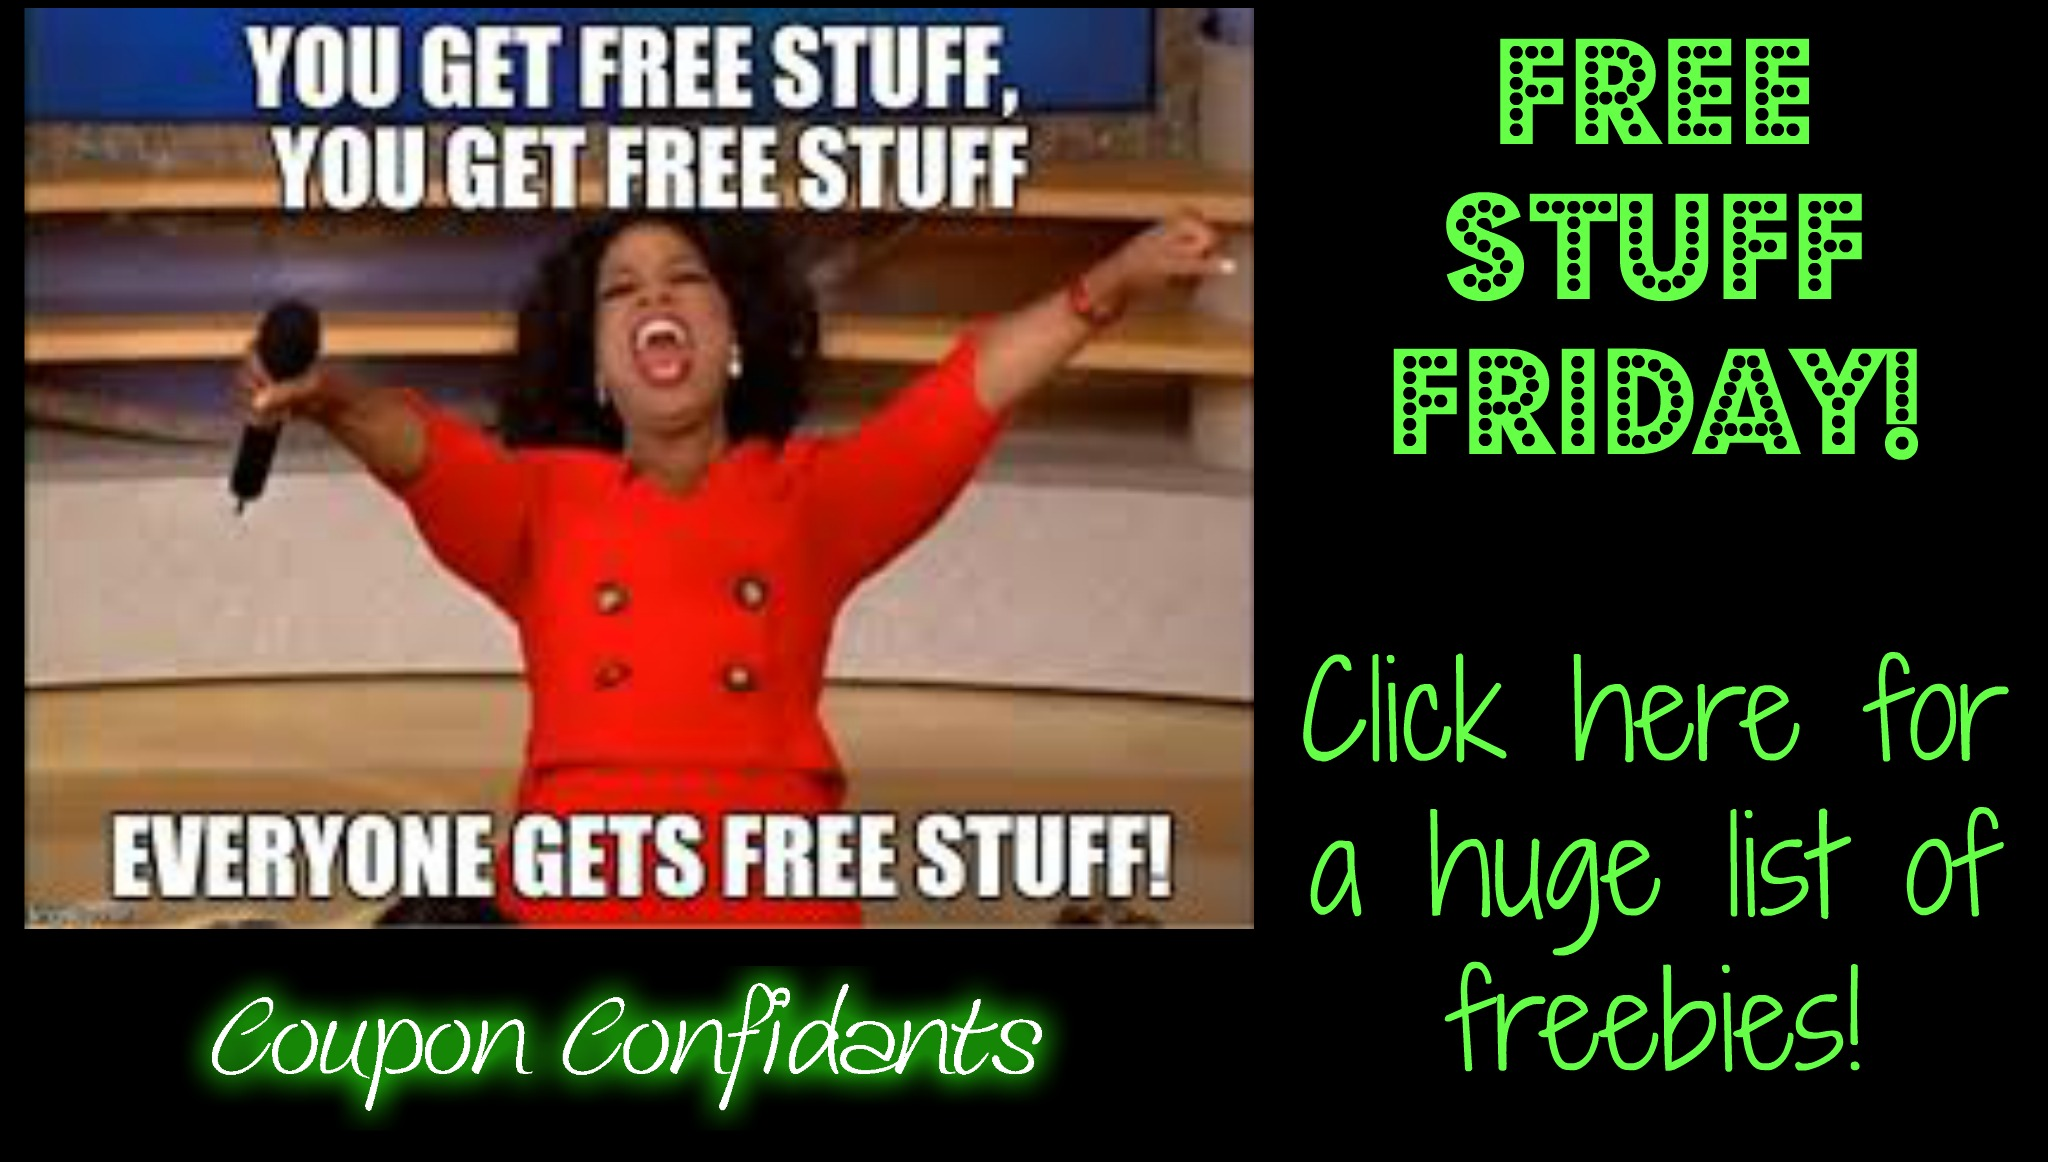 Free Stuff Friday! Click here for some great freebies!